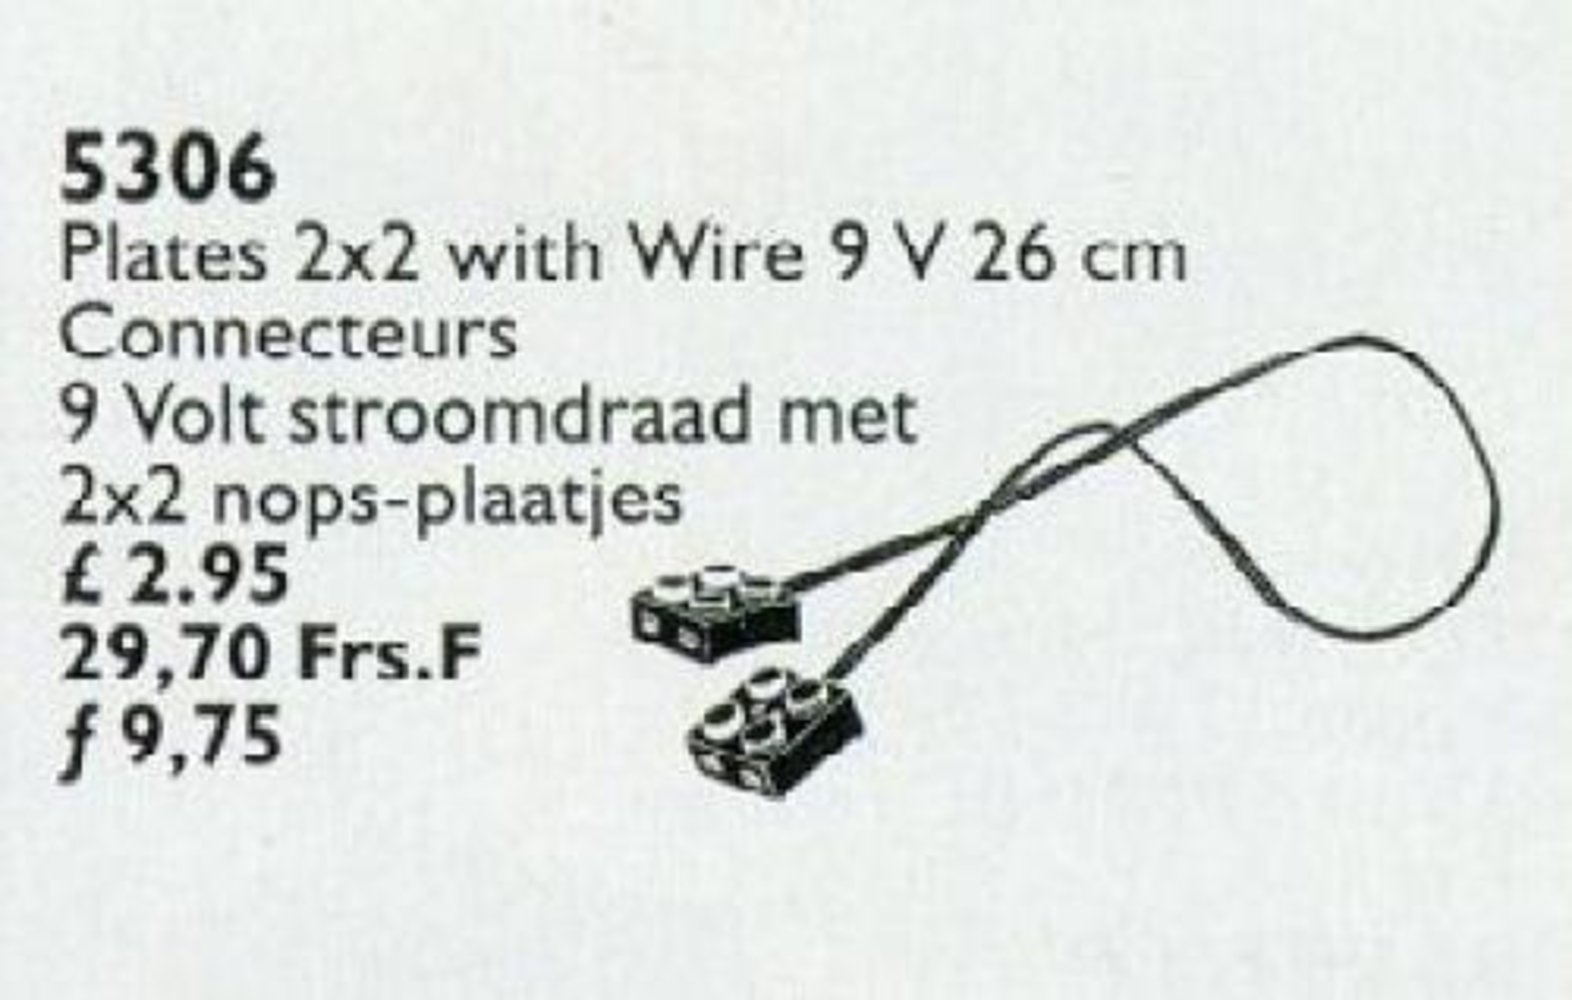 Plates 2x2 with Wire 9 V 26 cm